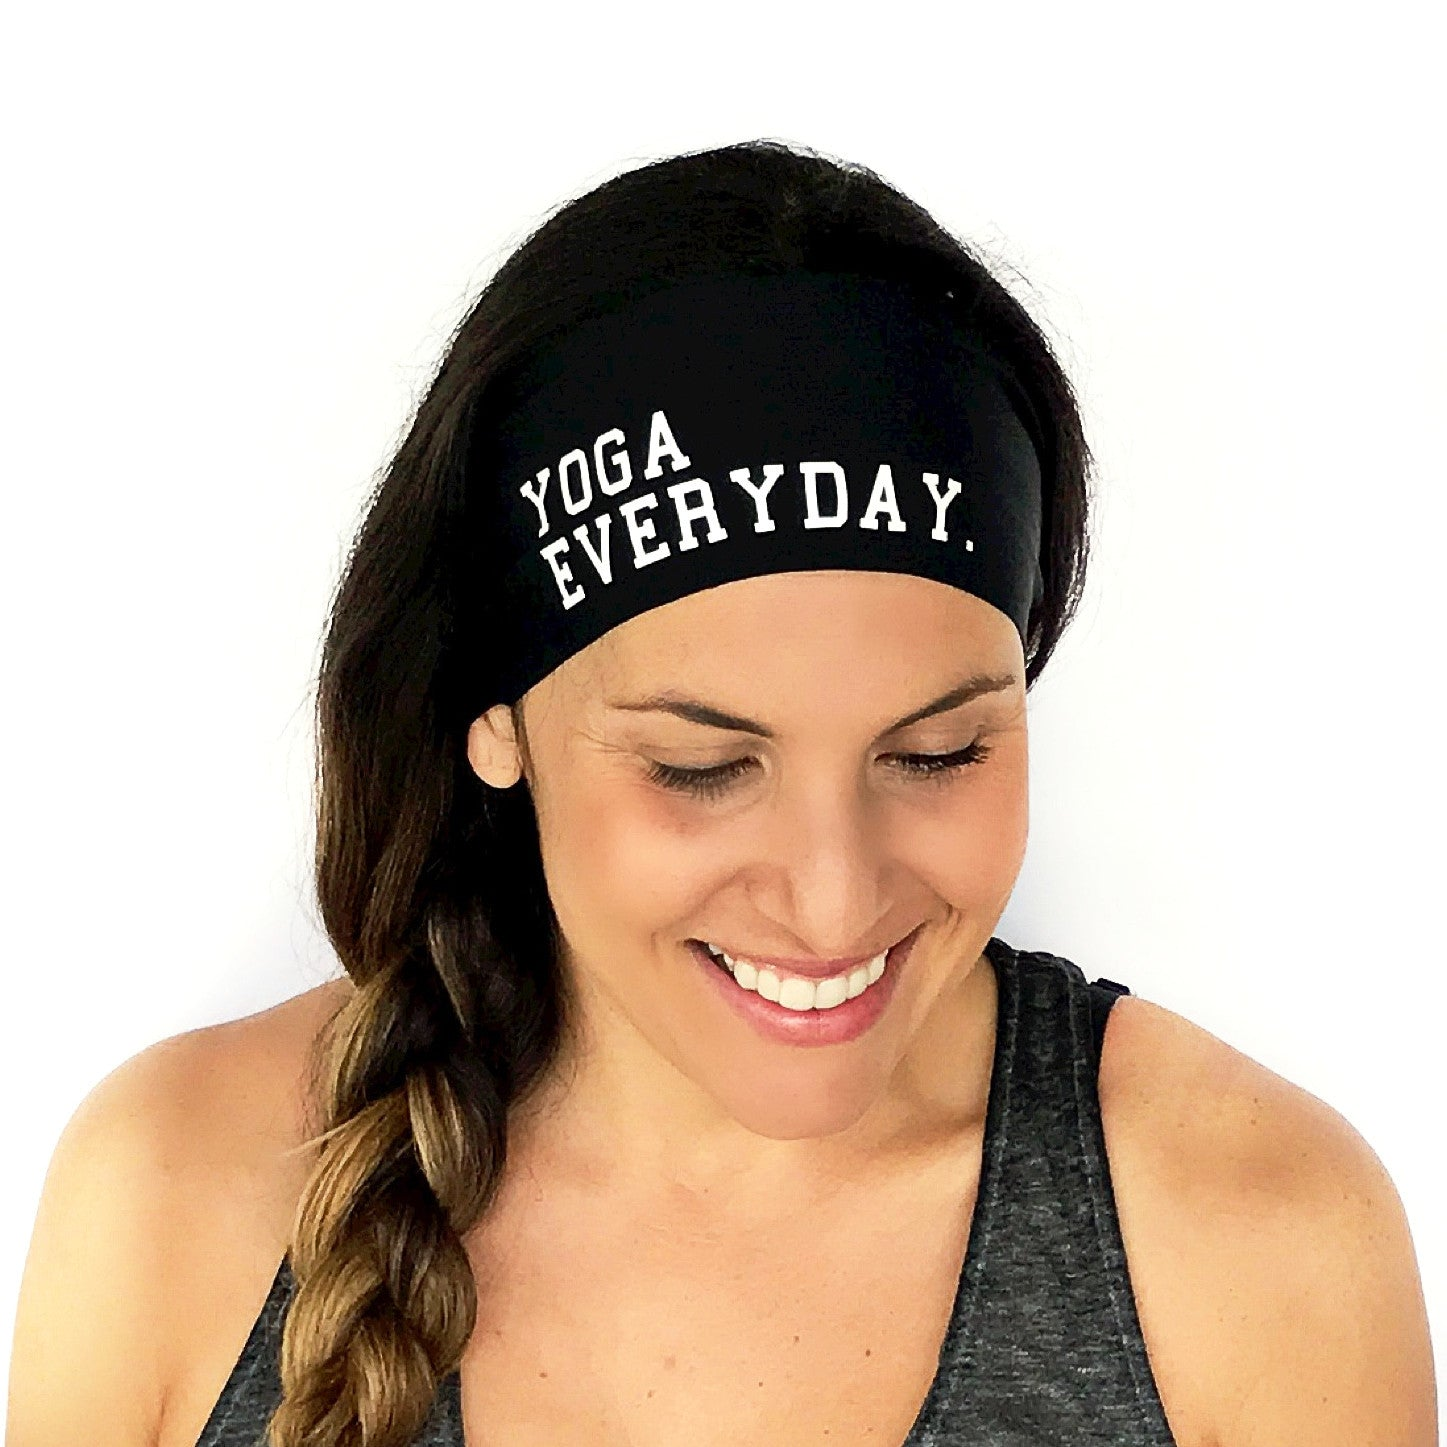 Yoga Everyday Scripted Headband